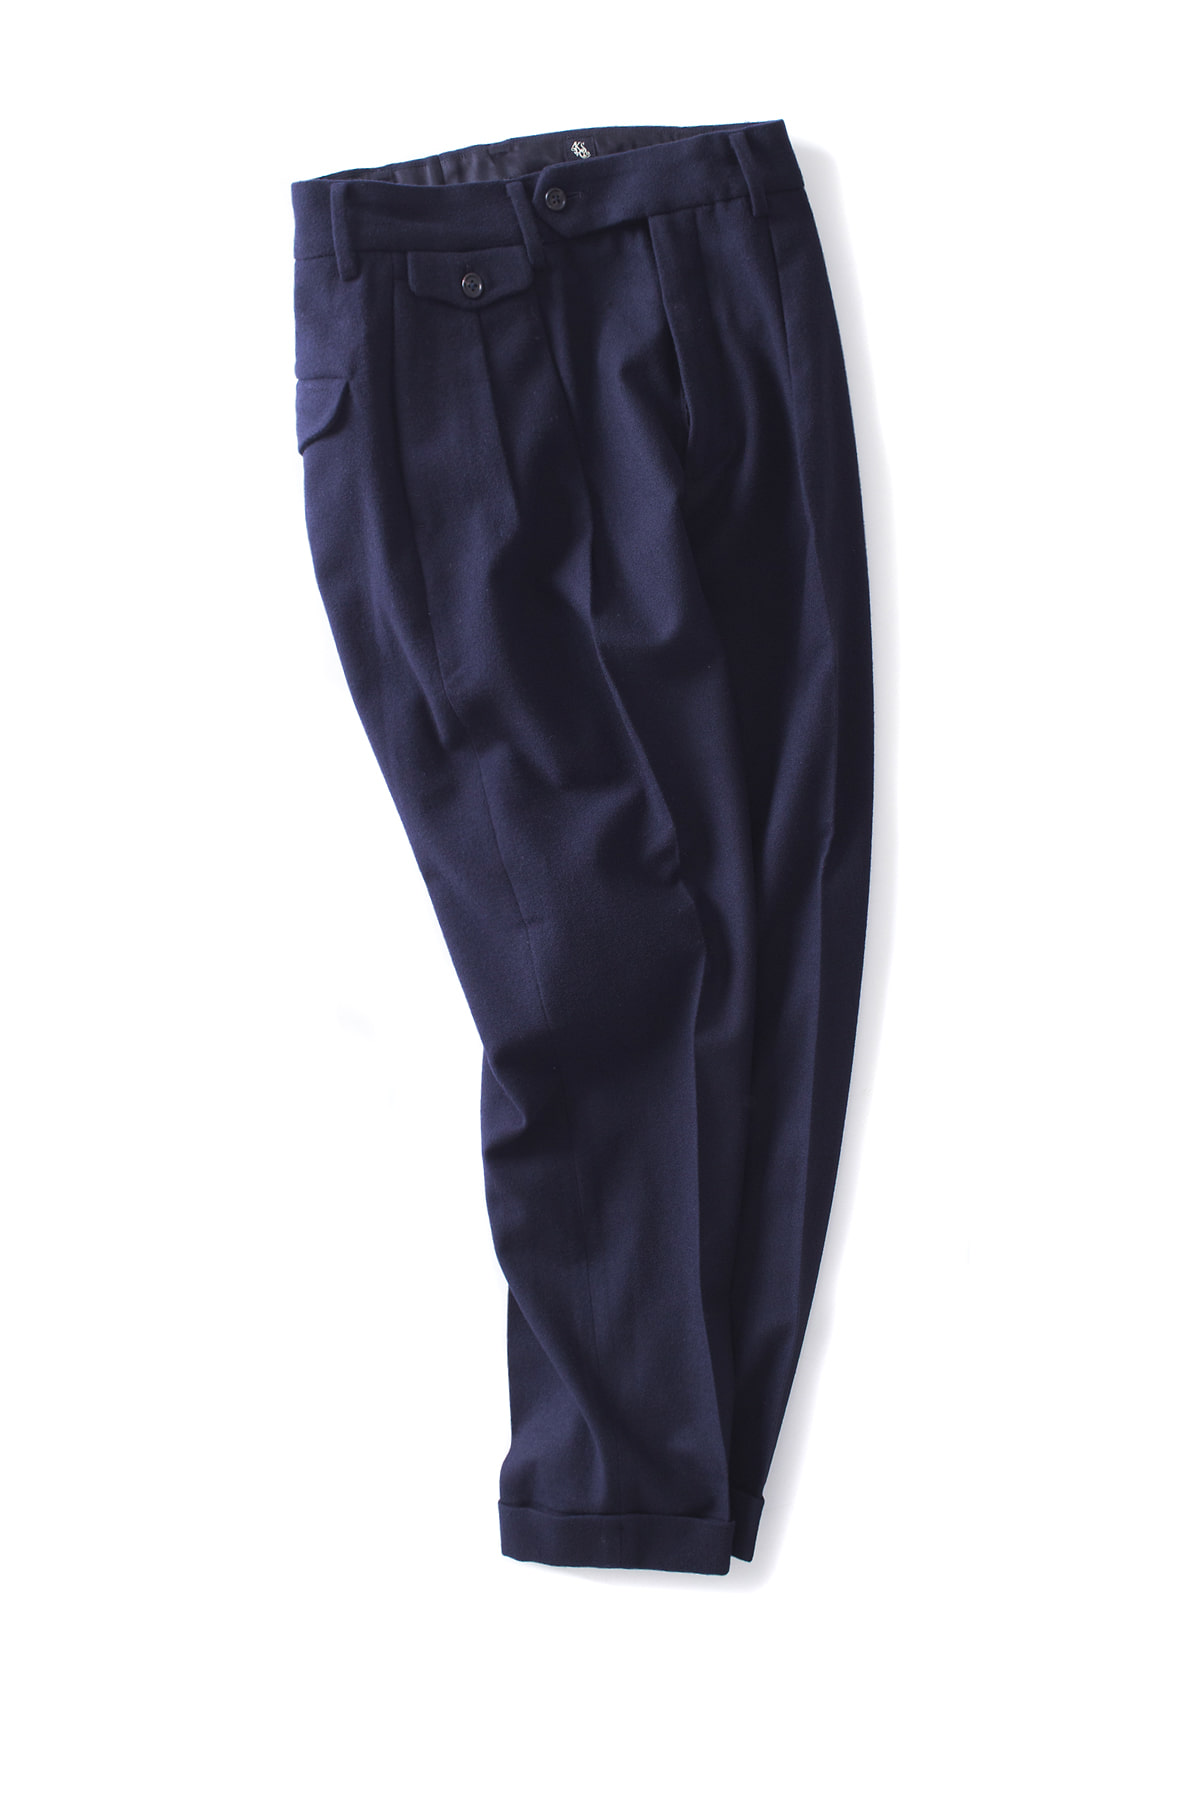 Kaptain Sunshine : Two Pleats Trousers (Navy)